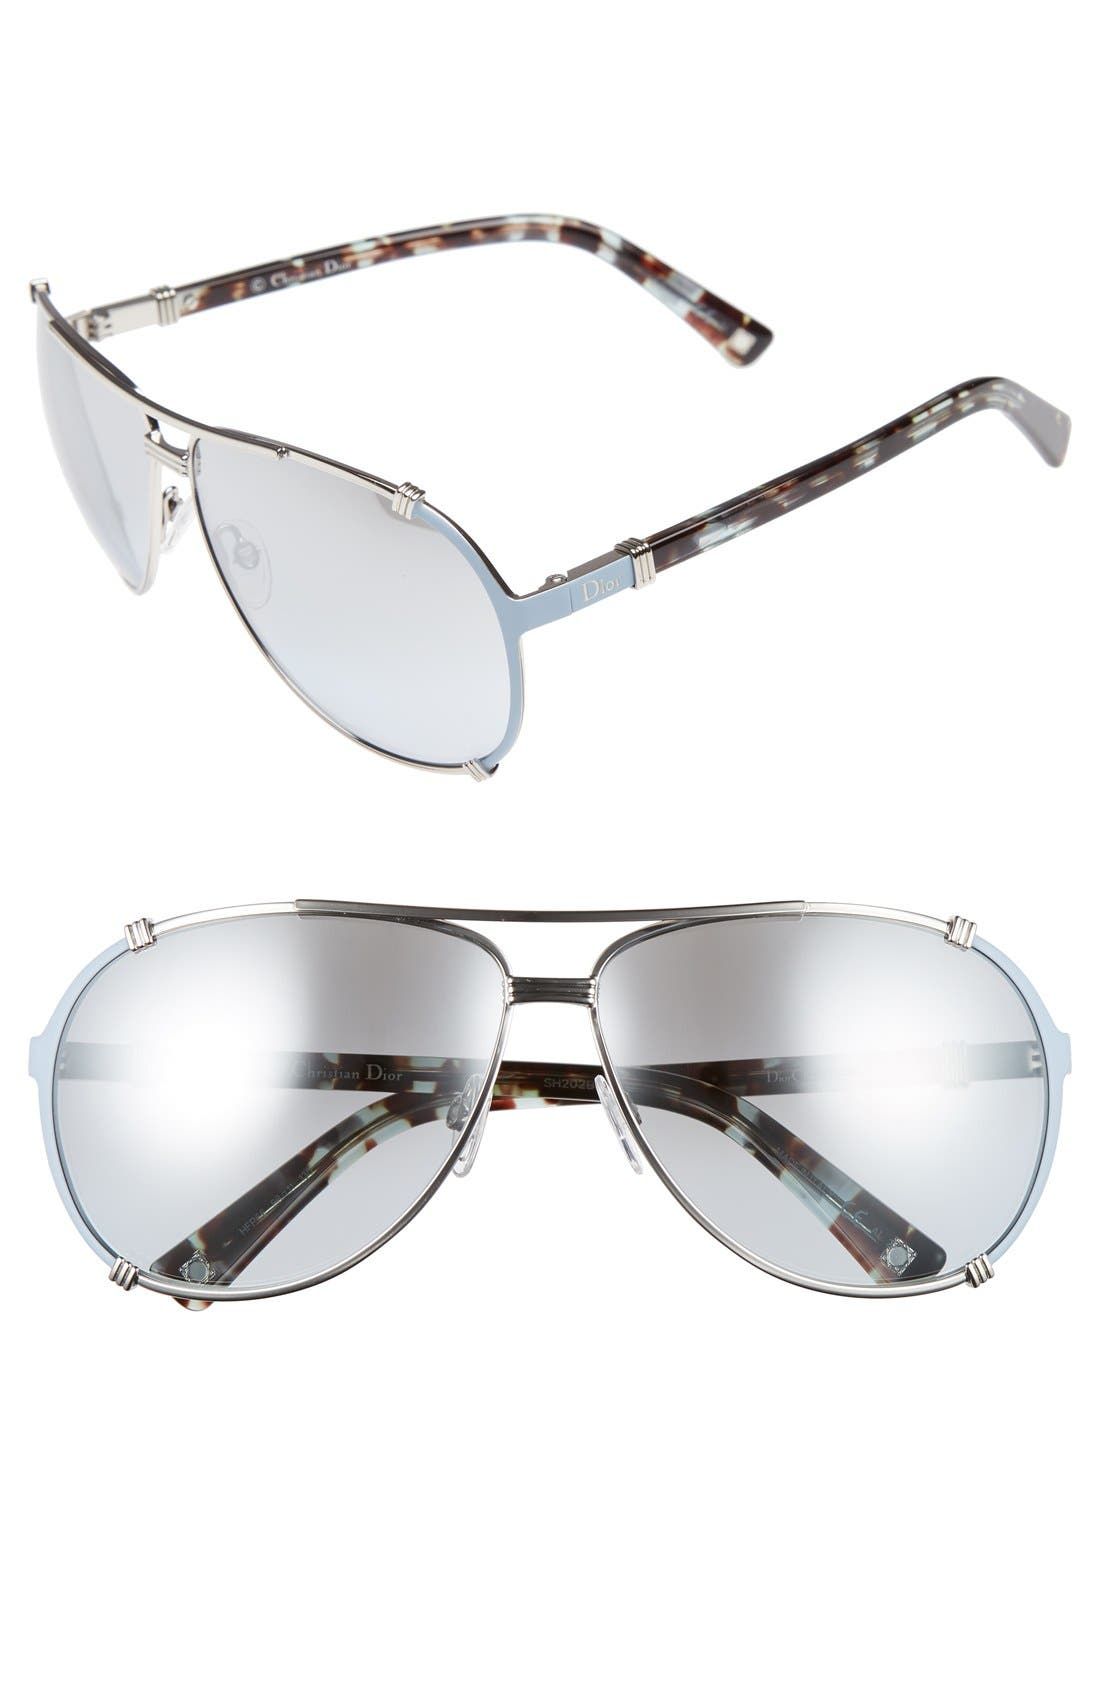 Main Image - Dior 'Chicago' 63mm Metal Aviator Sunglasses